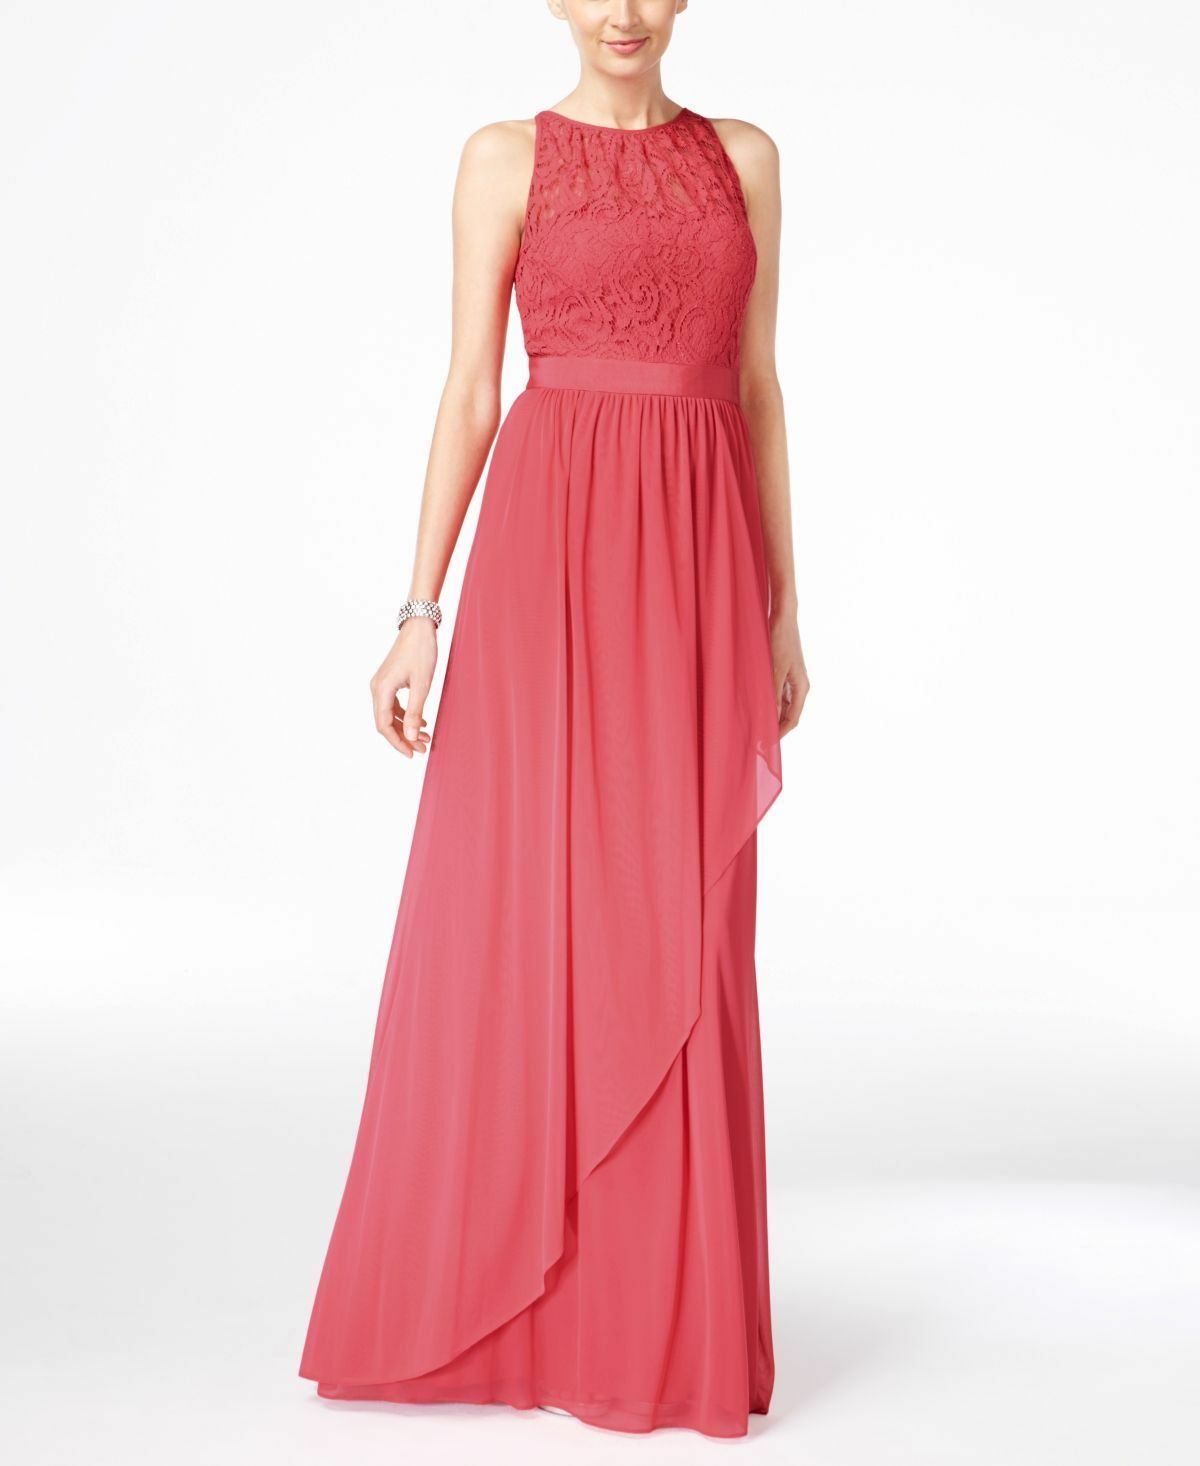 330 ADRIANNA PAPELL Womens PINK LACE ILLUSION HALTER LAYERED A-LINE GOWN 14